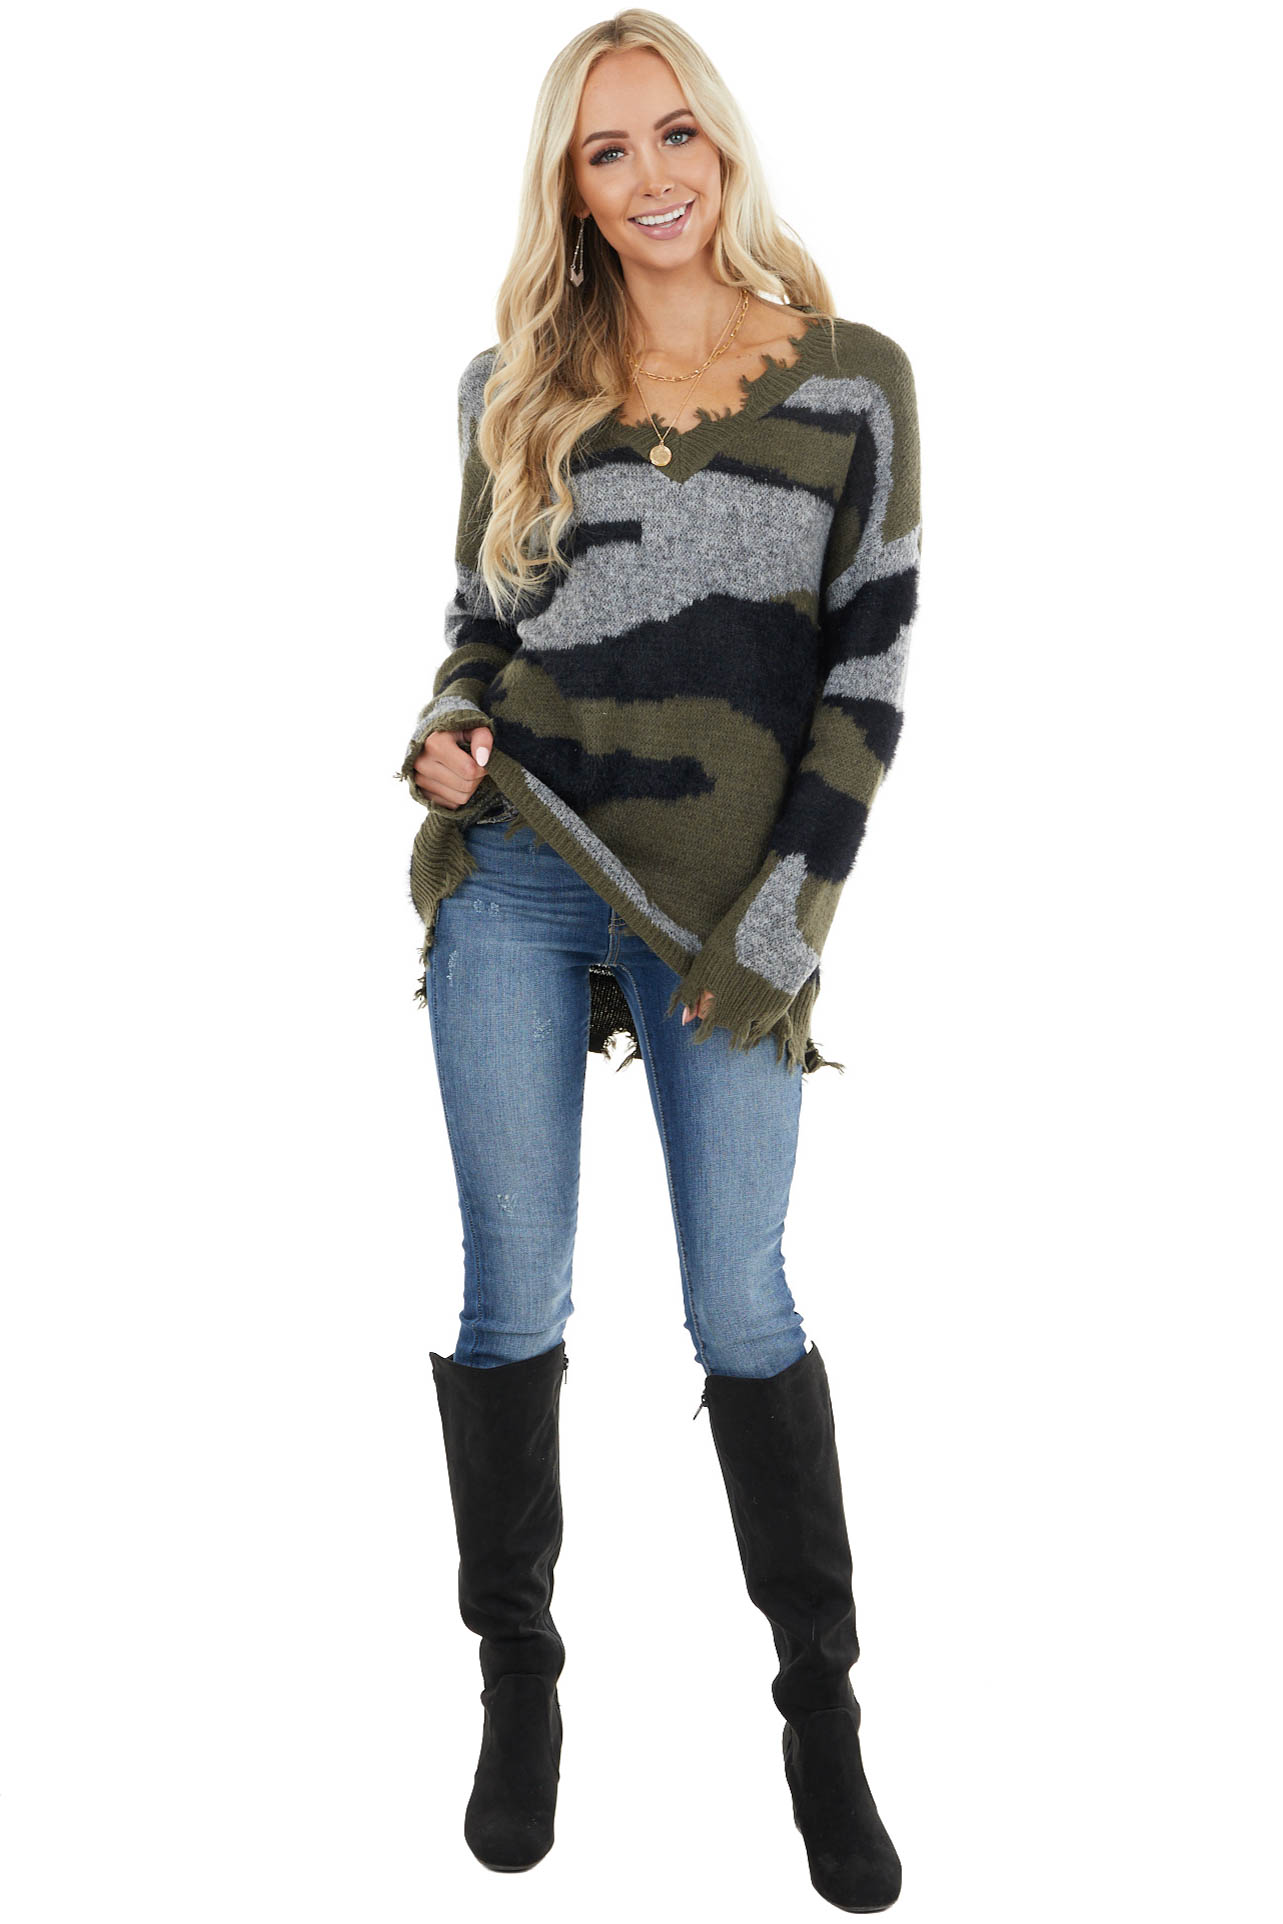 Hunter Green Camo Long Sleeve Sweater with Distressed Detail